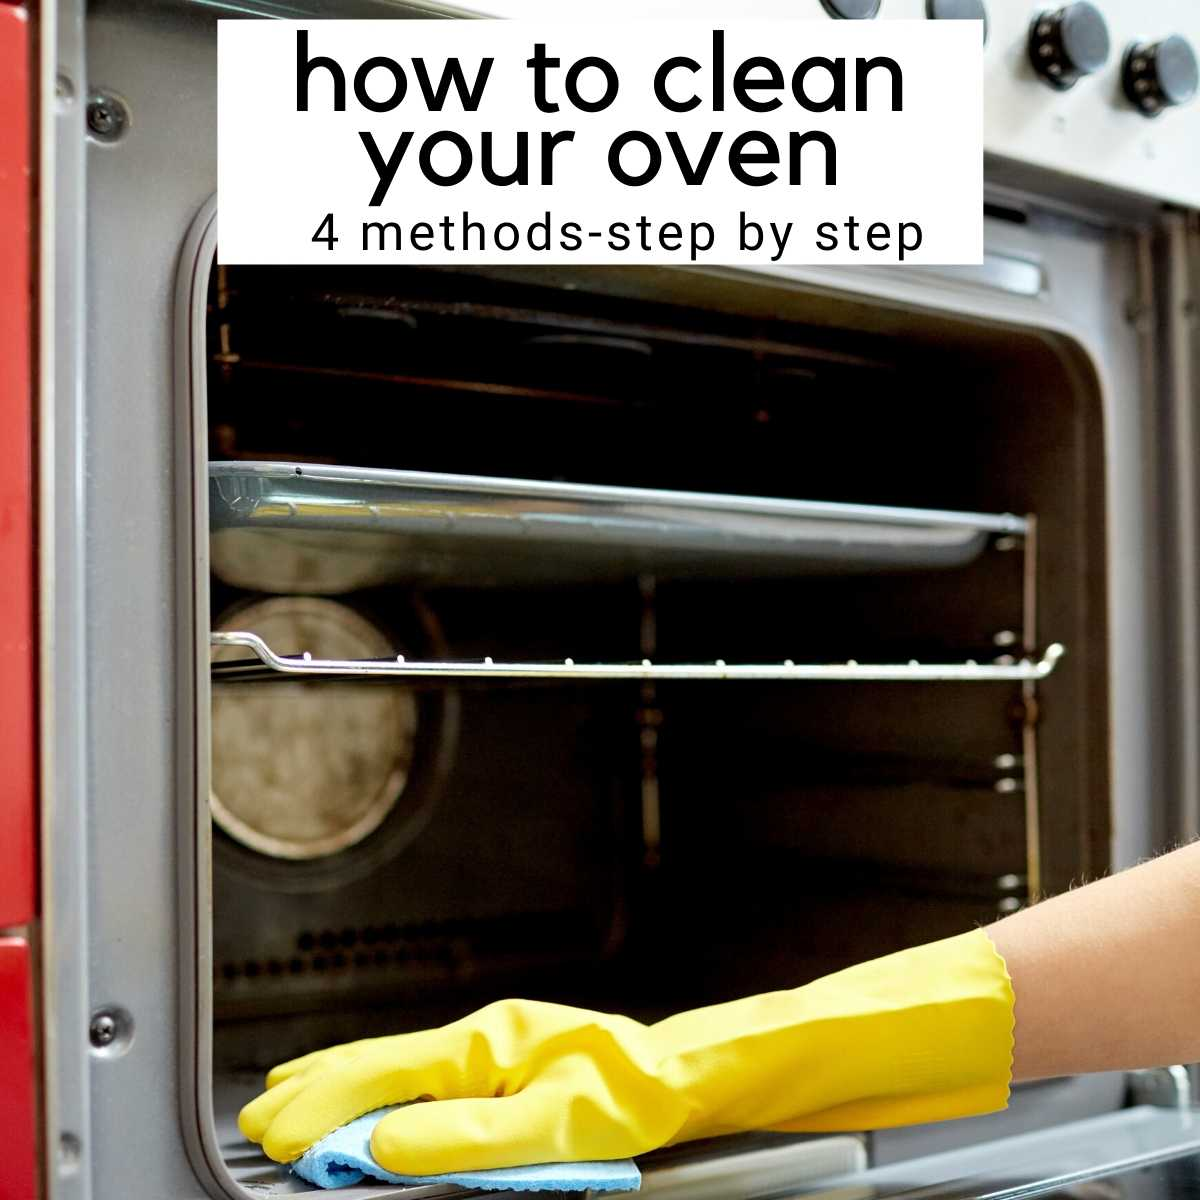 Cleaning & Organizing cover image